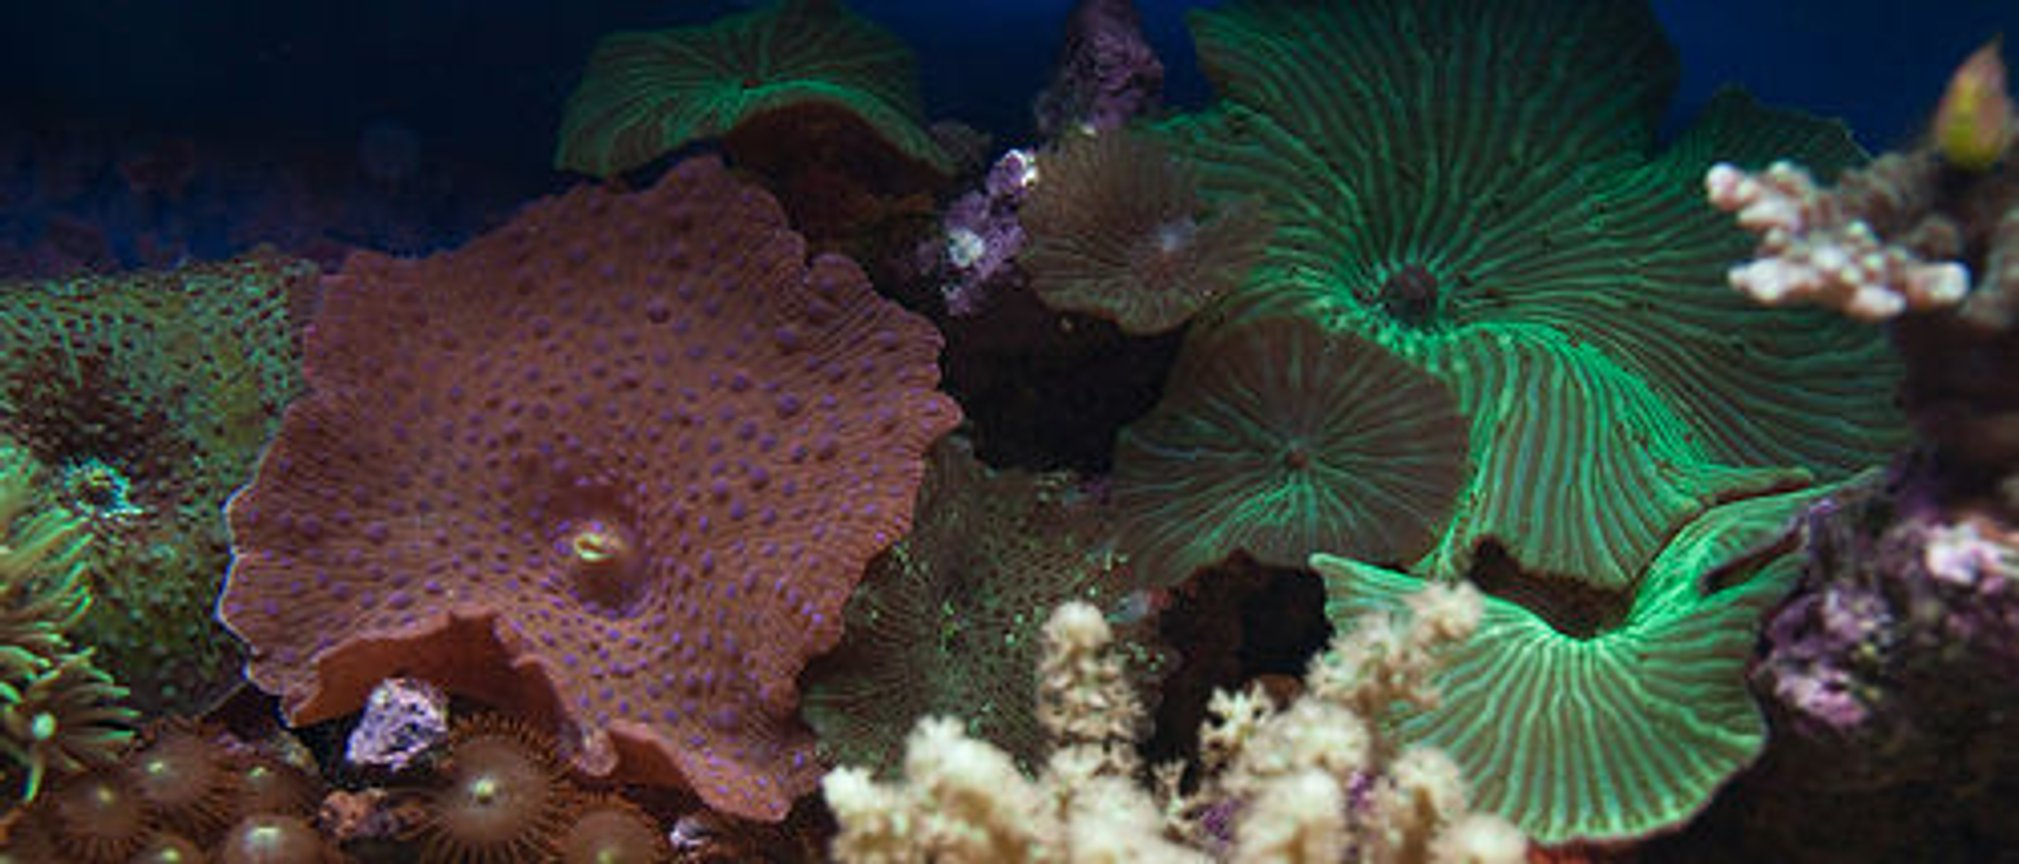 corals inverts - actinodiscus sp. - green striped mushroom stocking in 37 gallons tank - mushrooms